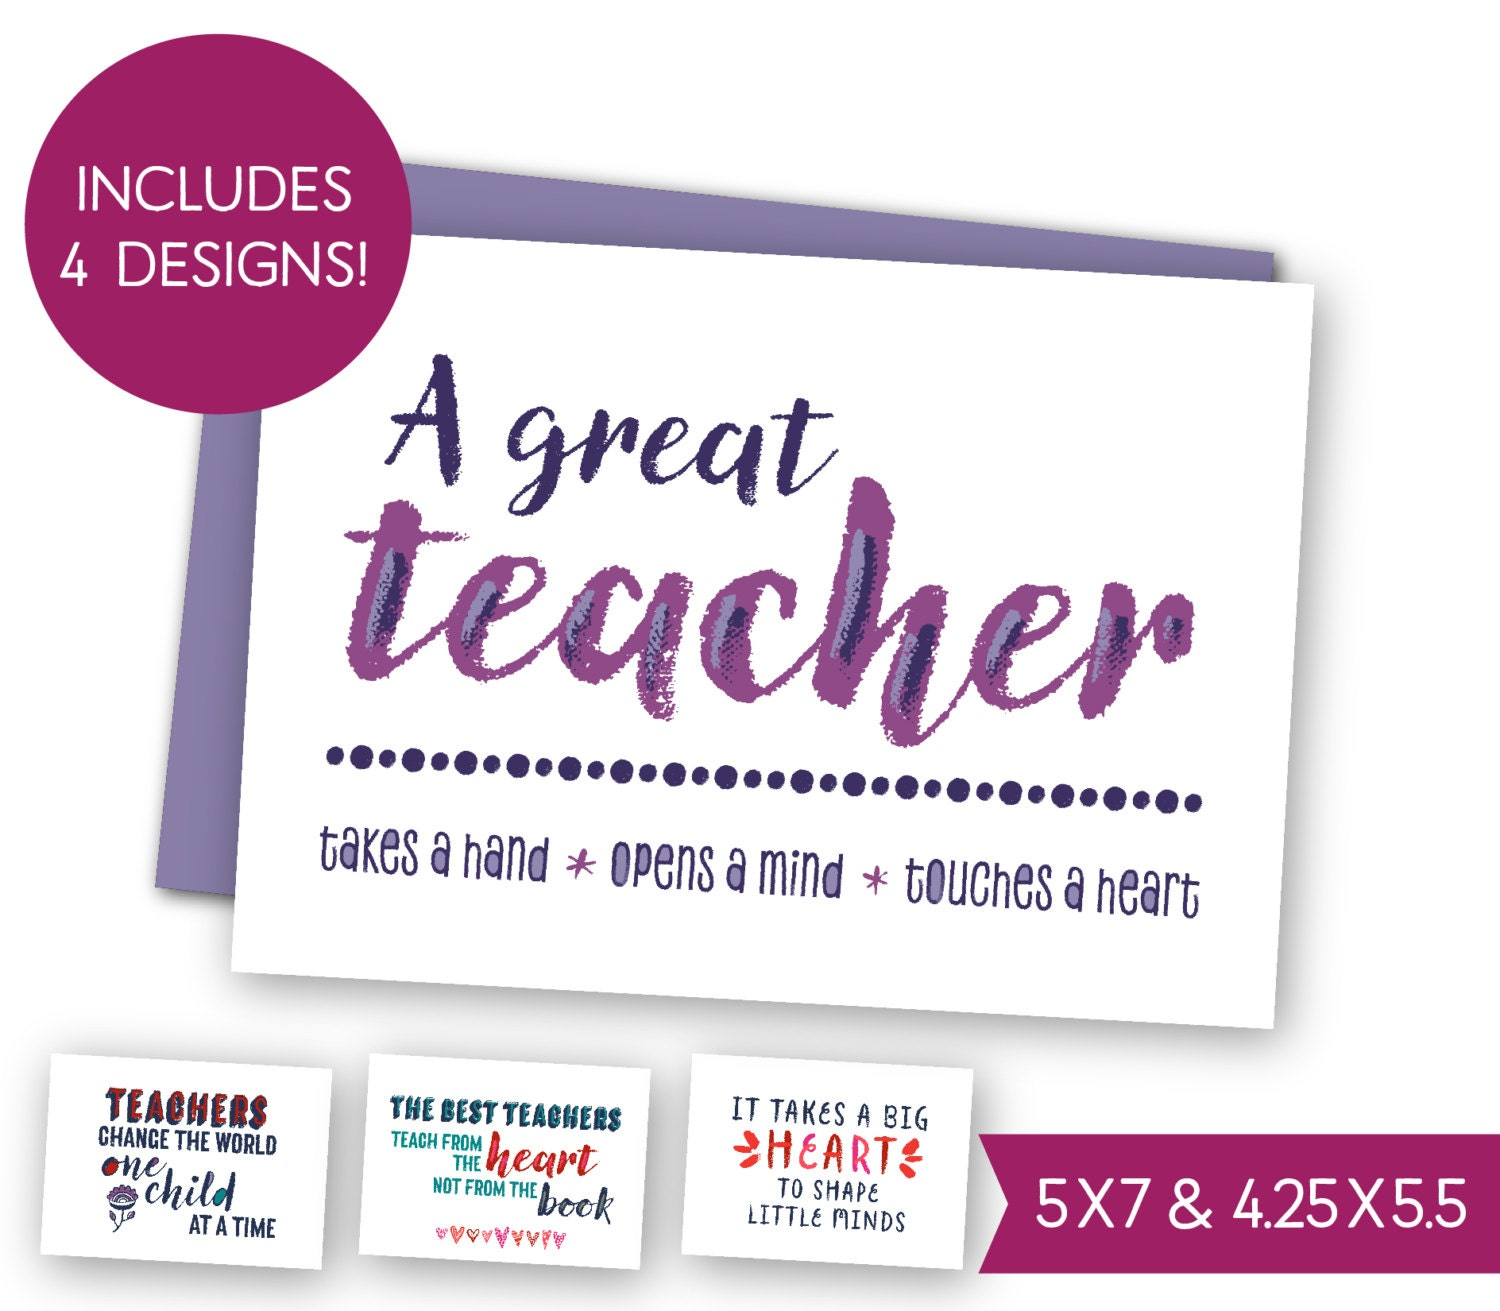 School teacher quotes printable card bundle teacher zoom kristyandbryce Image collections